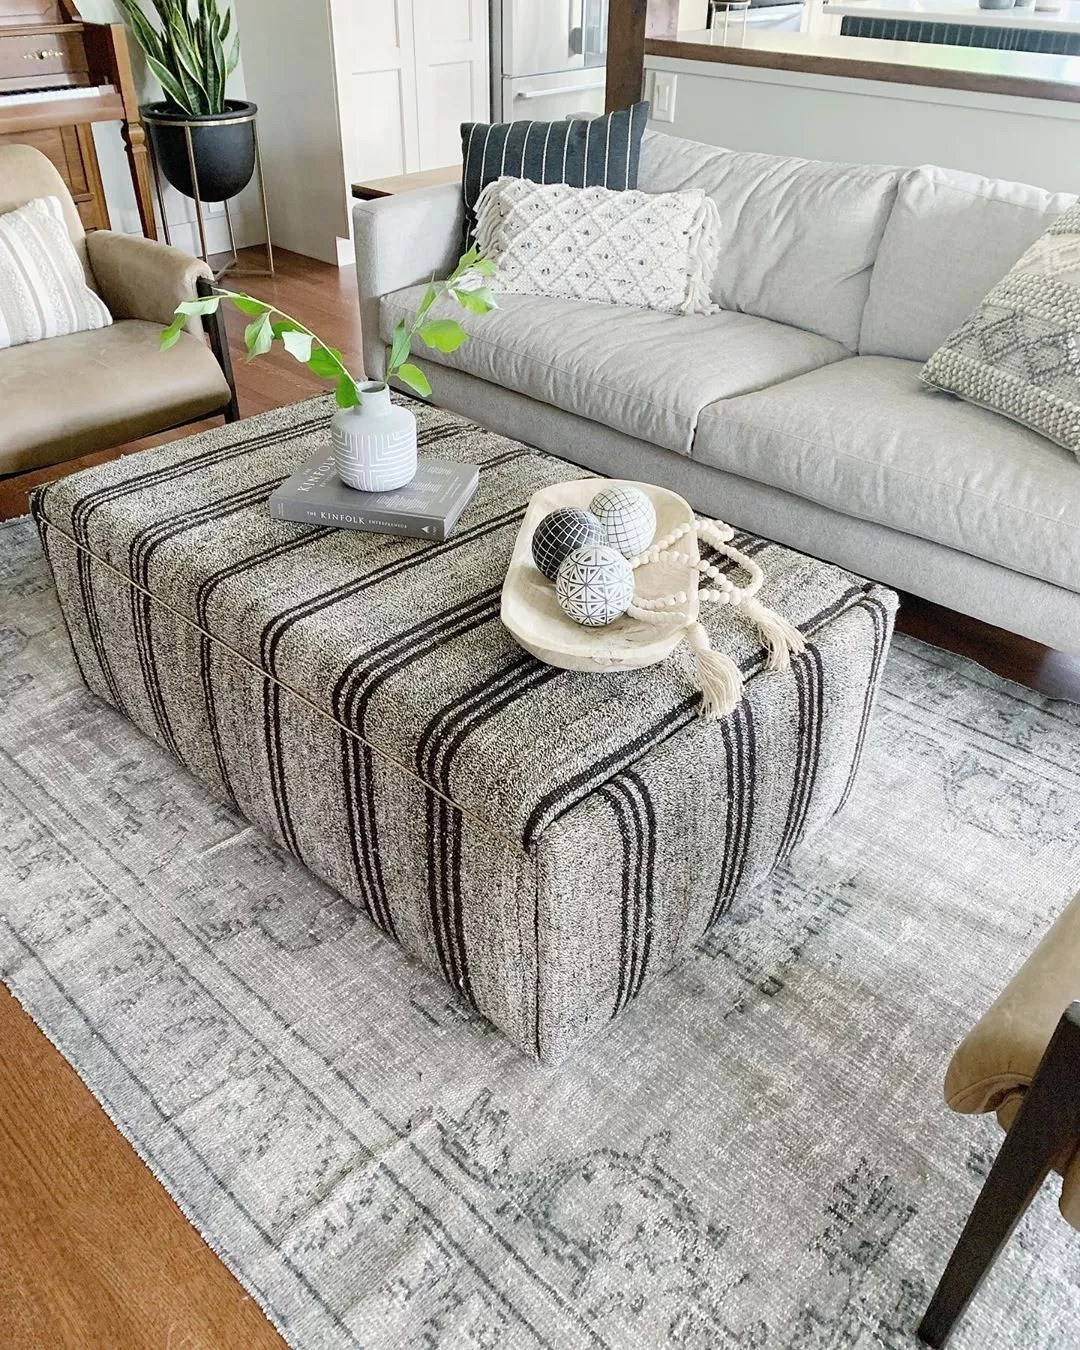 Storage Ottoman placed in the middle of a living room. Photo by Instagram user @courtneyungaro_spaceanddesign